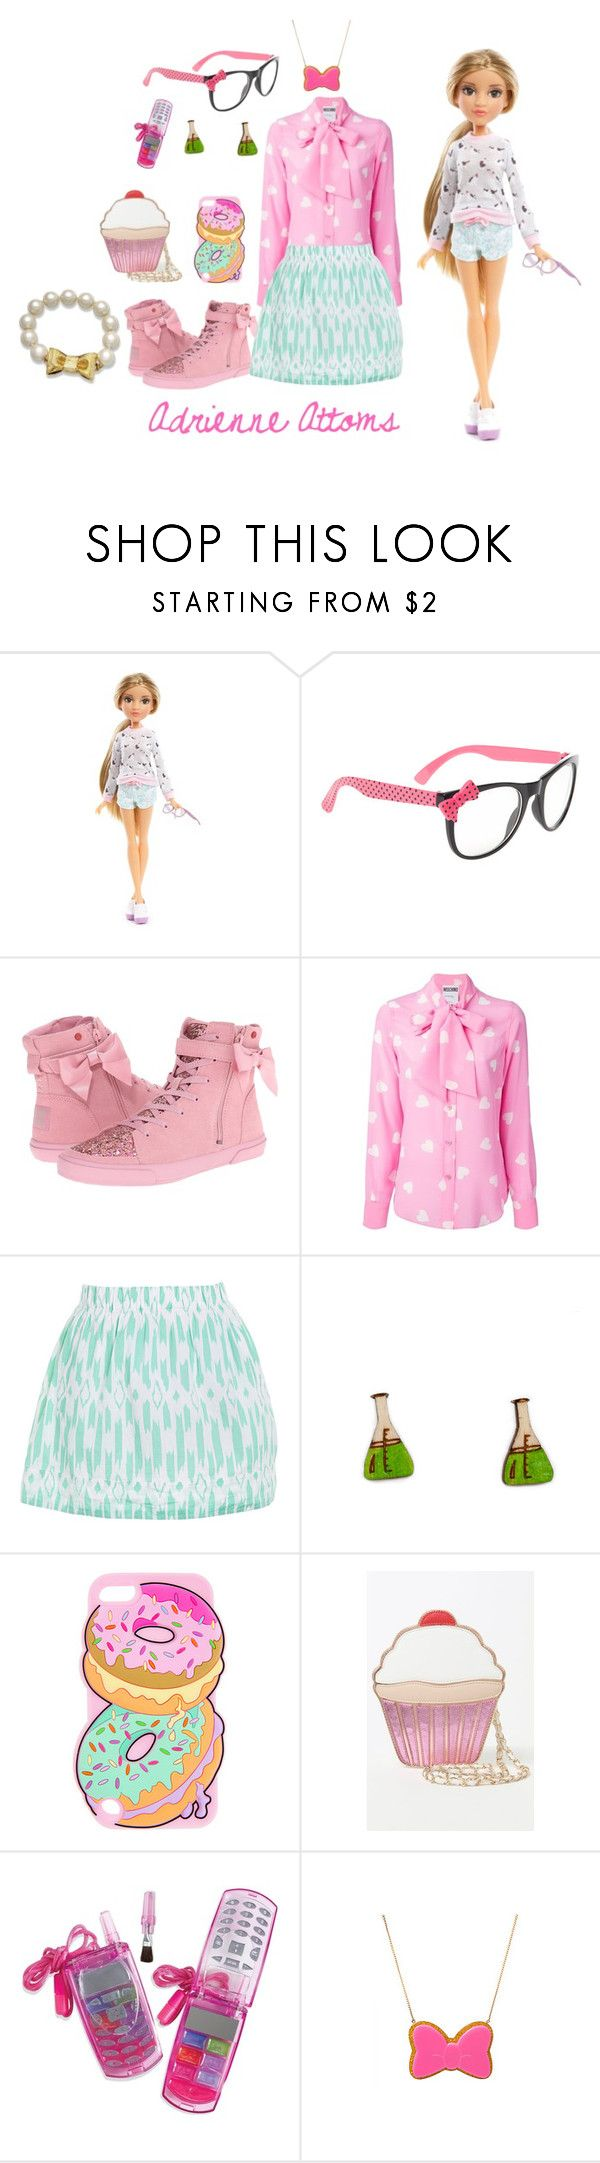 """Adrienne Attoms-Project MC2"" by grace-buerklin ❤ liked on Polyvore featuring MC2, claire's, UGG Australia, Moschino, J.Crew, Kate Rowland, Nila Anthony, ASOS, Kate Spade and projectmc2"